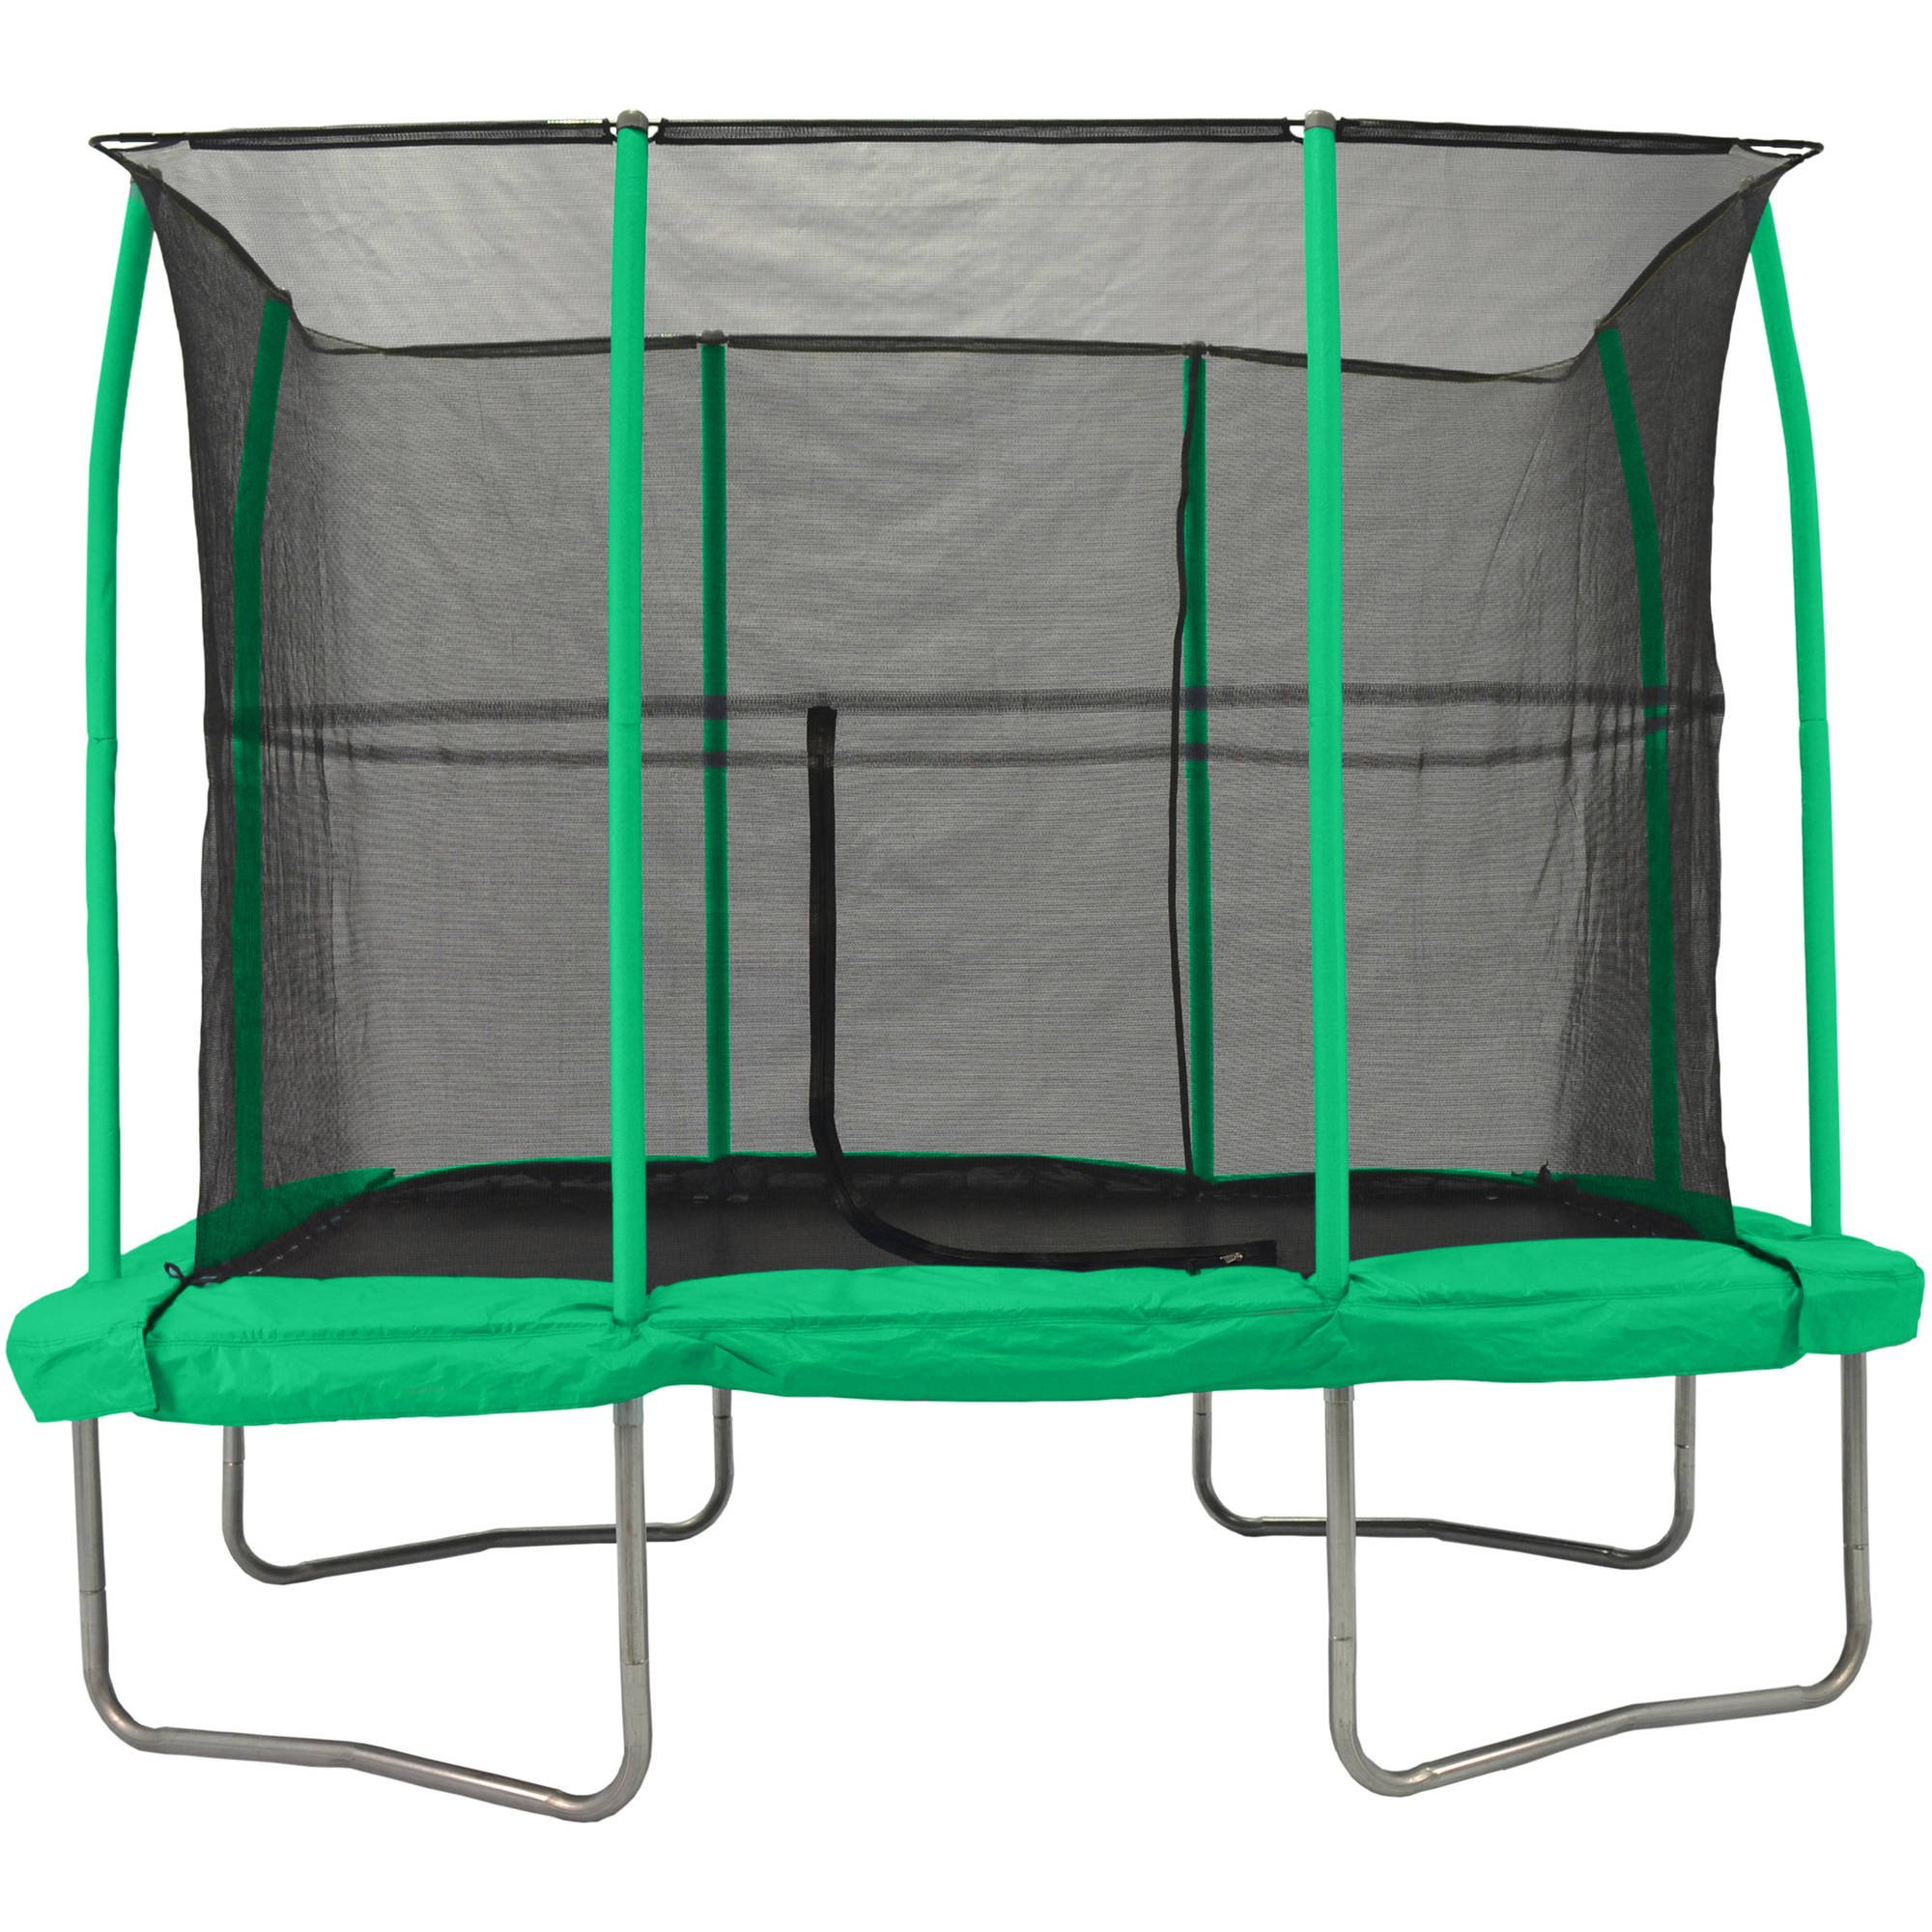 7' X 10' RECTANGULAR TRAMPOLINE with Fully integarated enclosure system, Green by Unknown (Image #1)